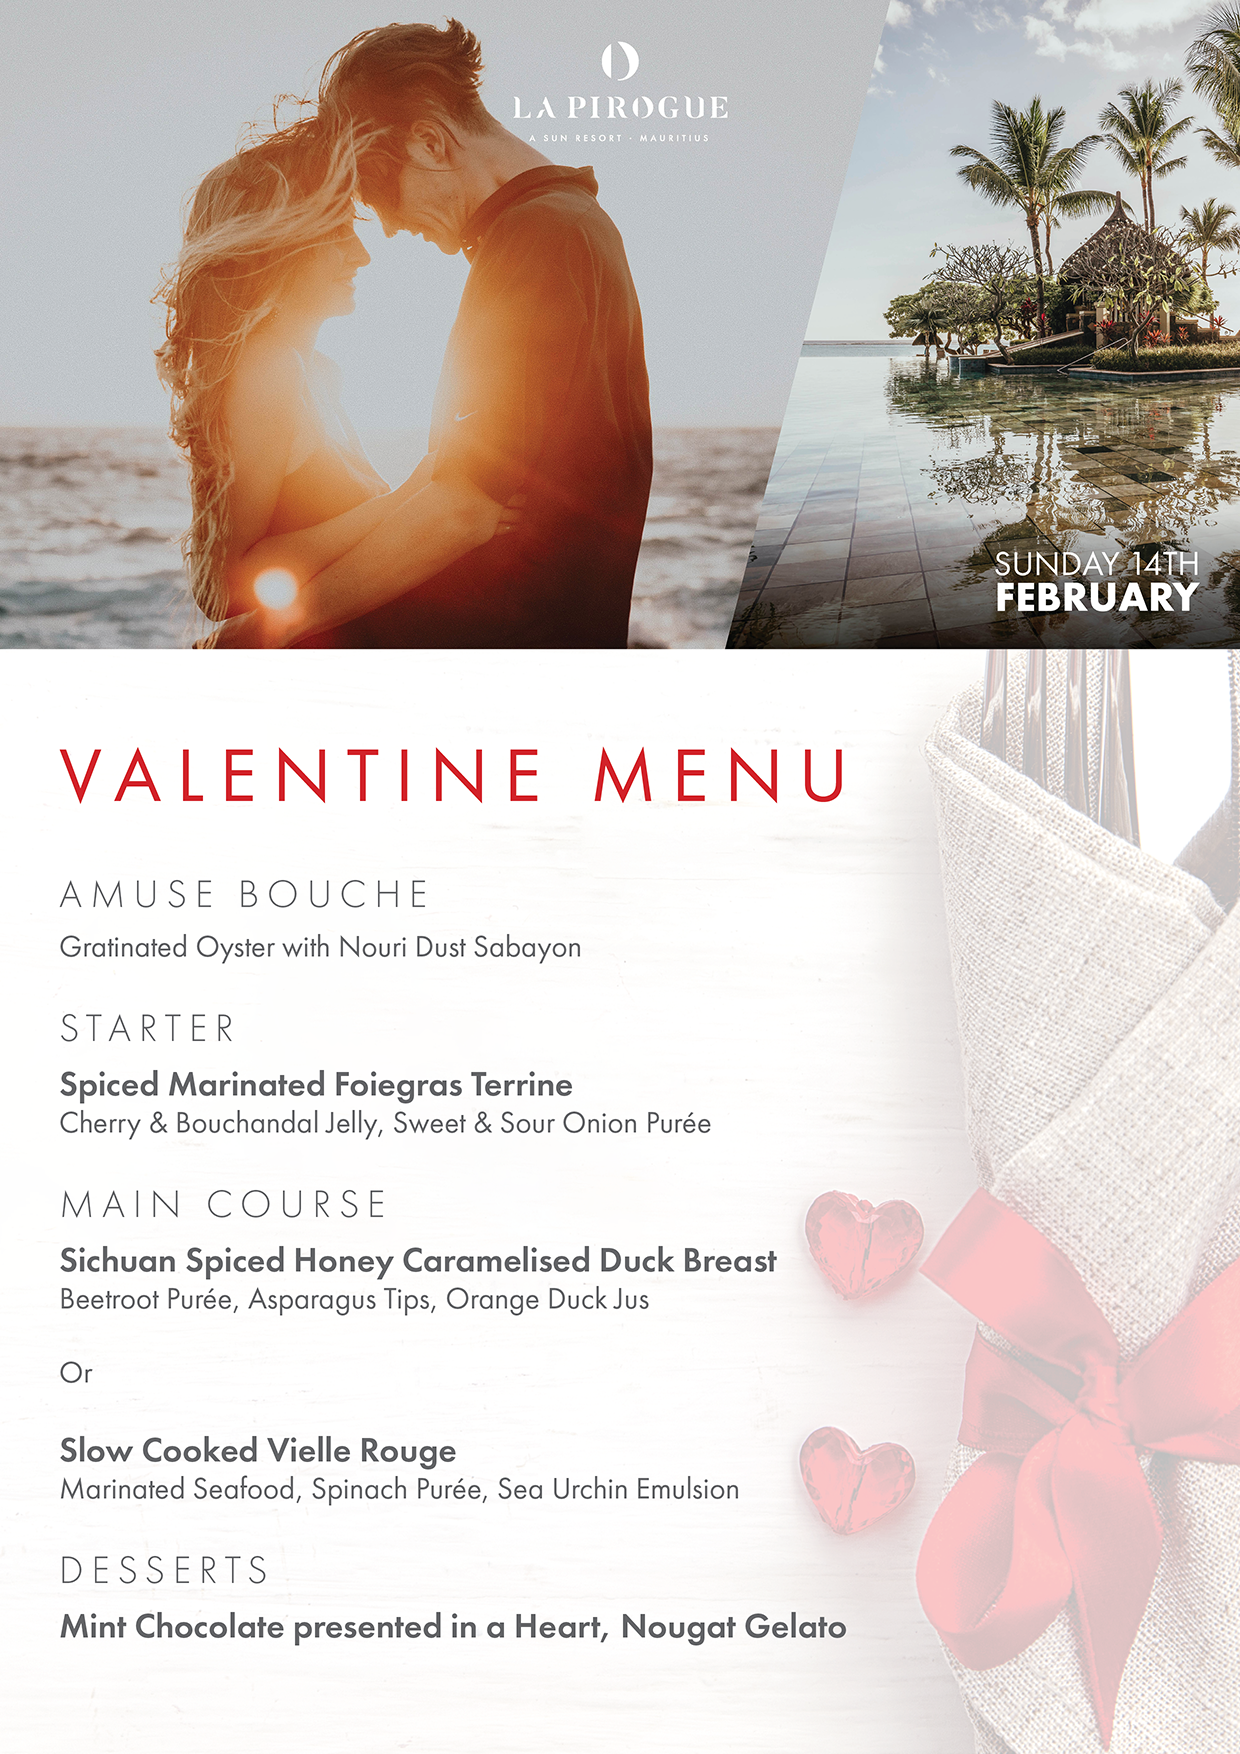 Valentine dinner at La Pirogue